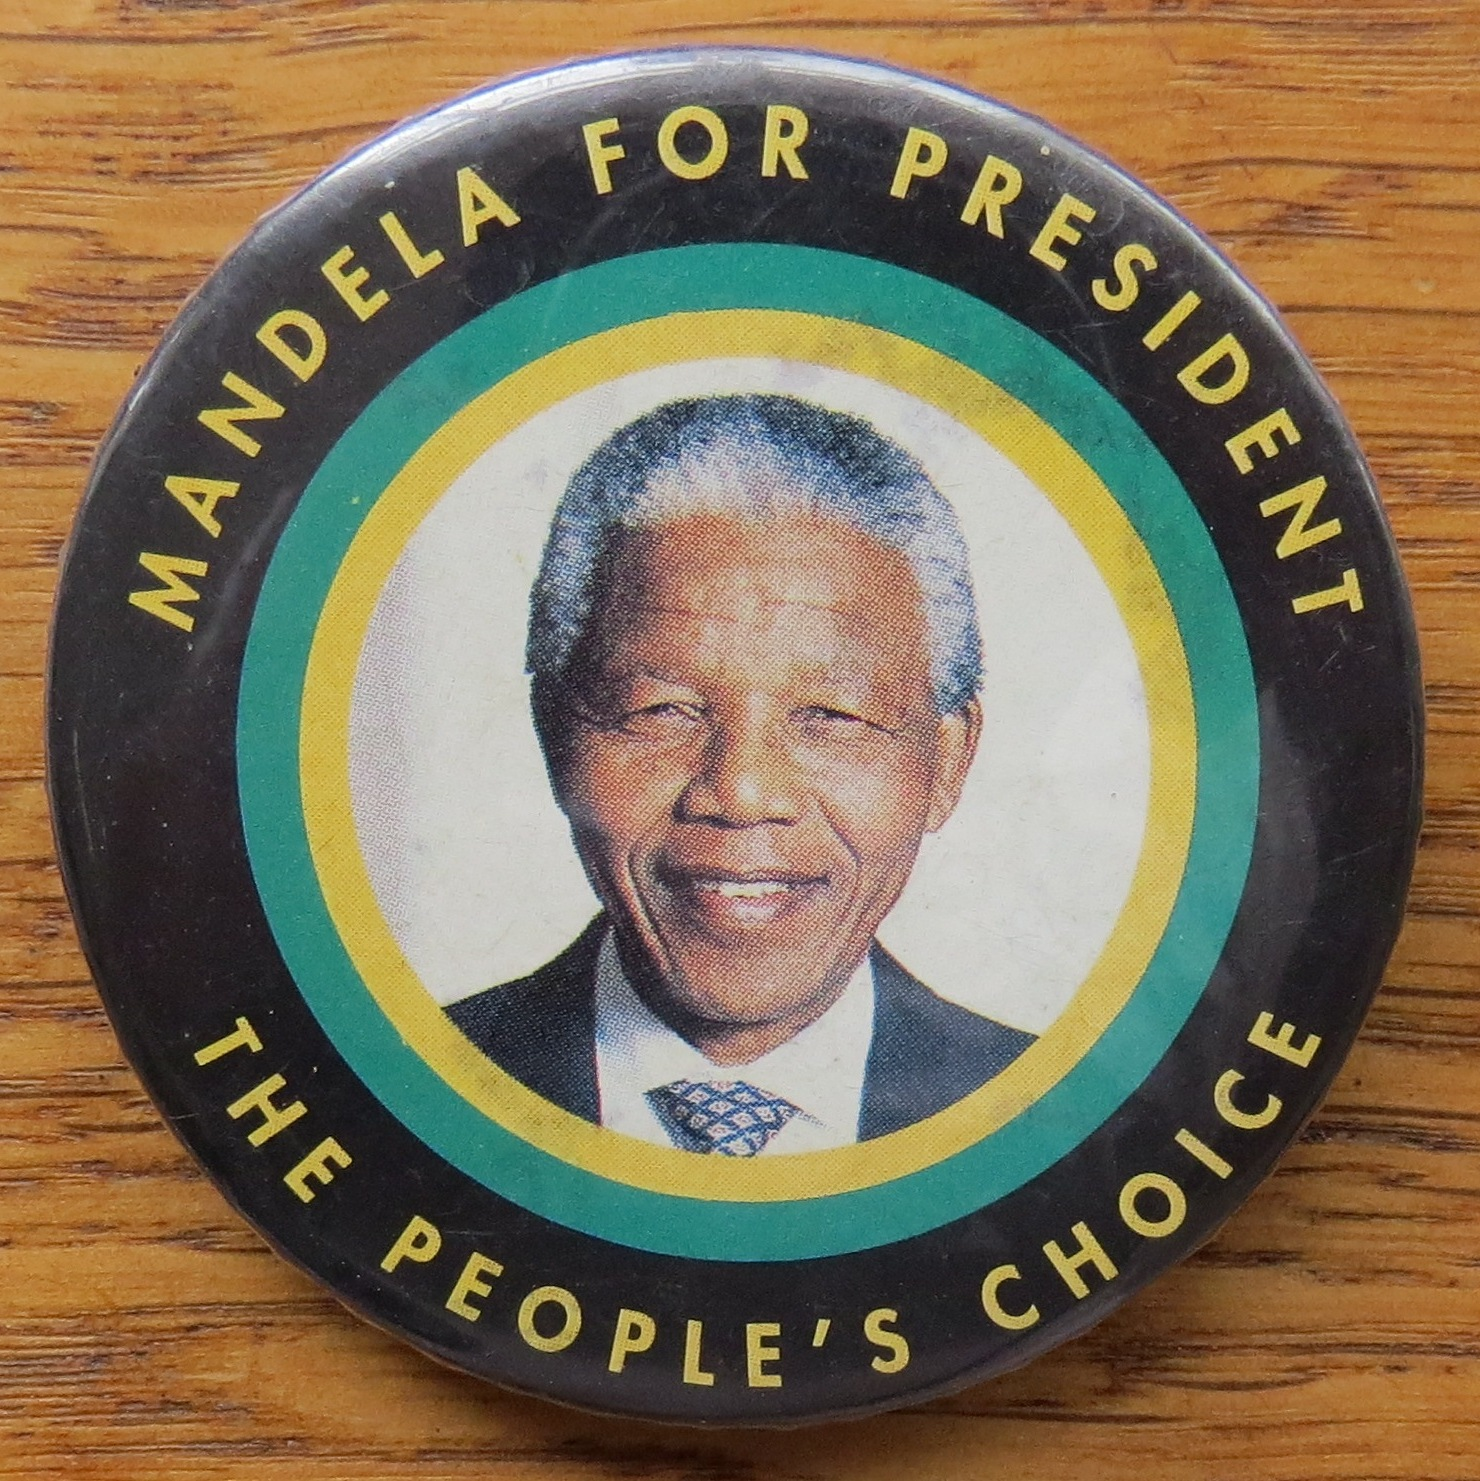 From Mandela's presidential election campaign